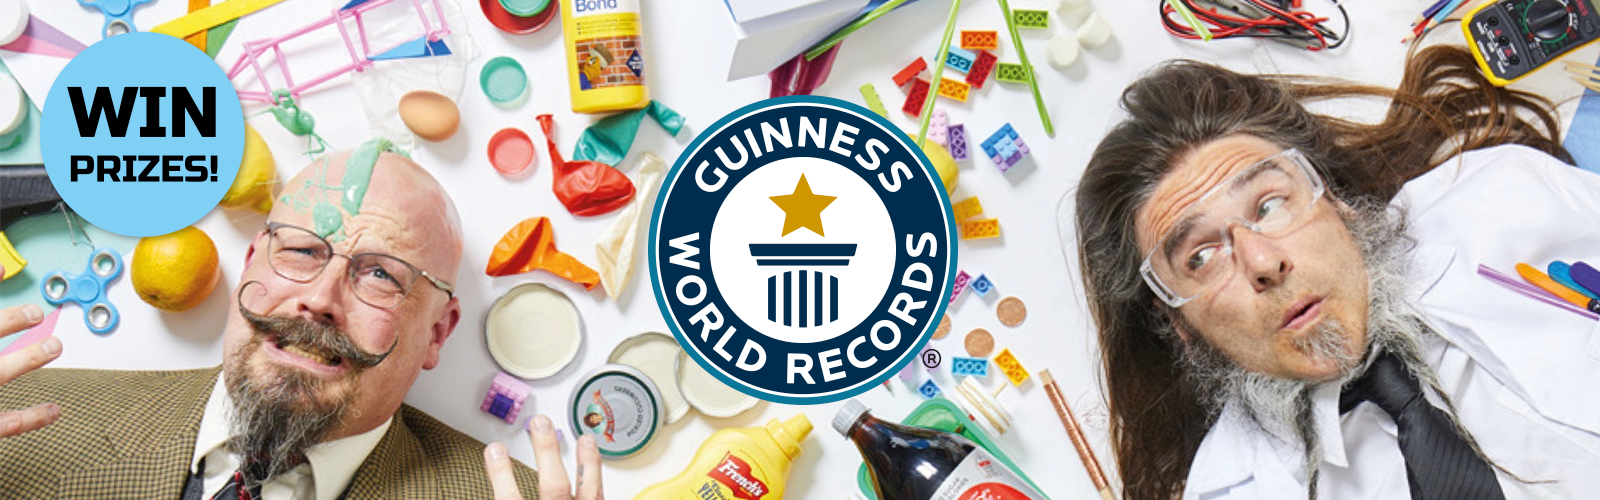 guinness world records logo with win prices badge and two men who look like teachers lying on a surface covered in balloons, lego mustard and other products